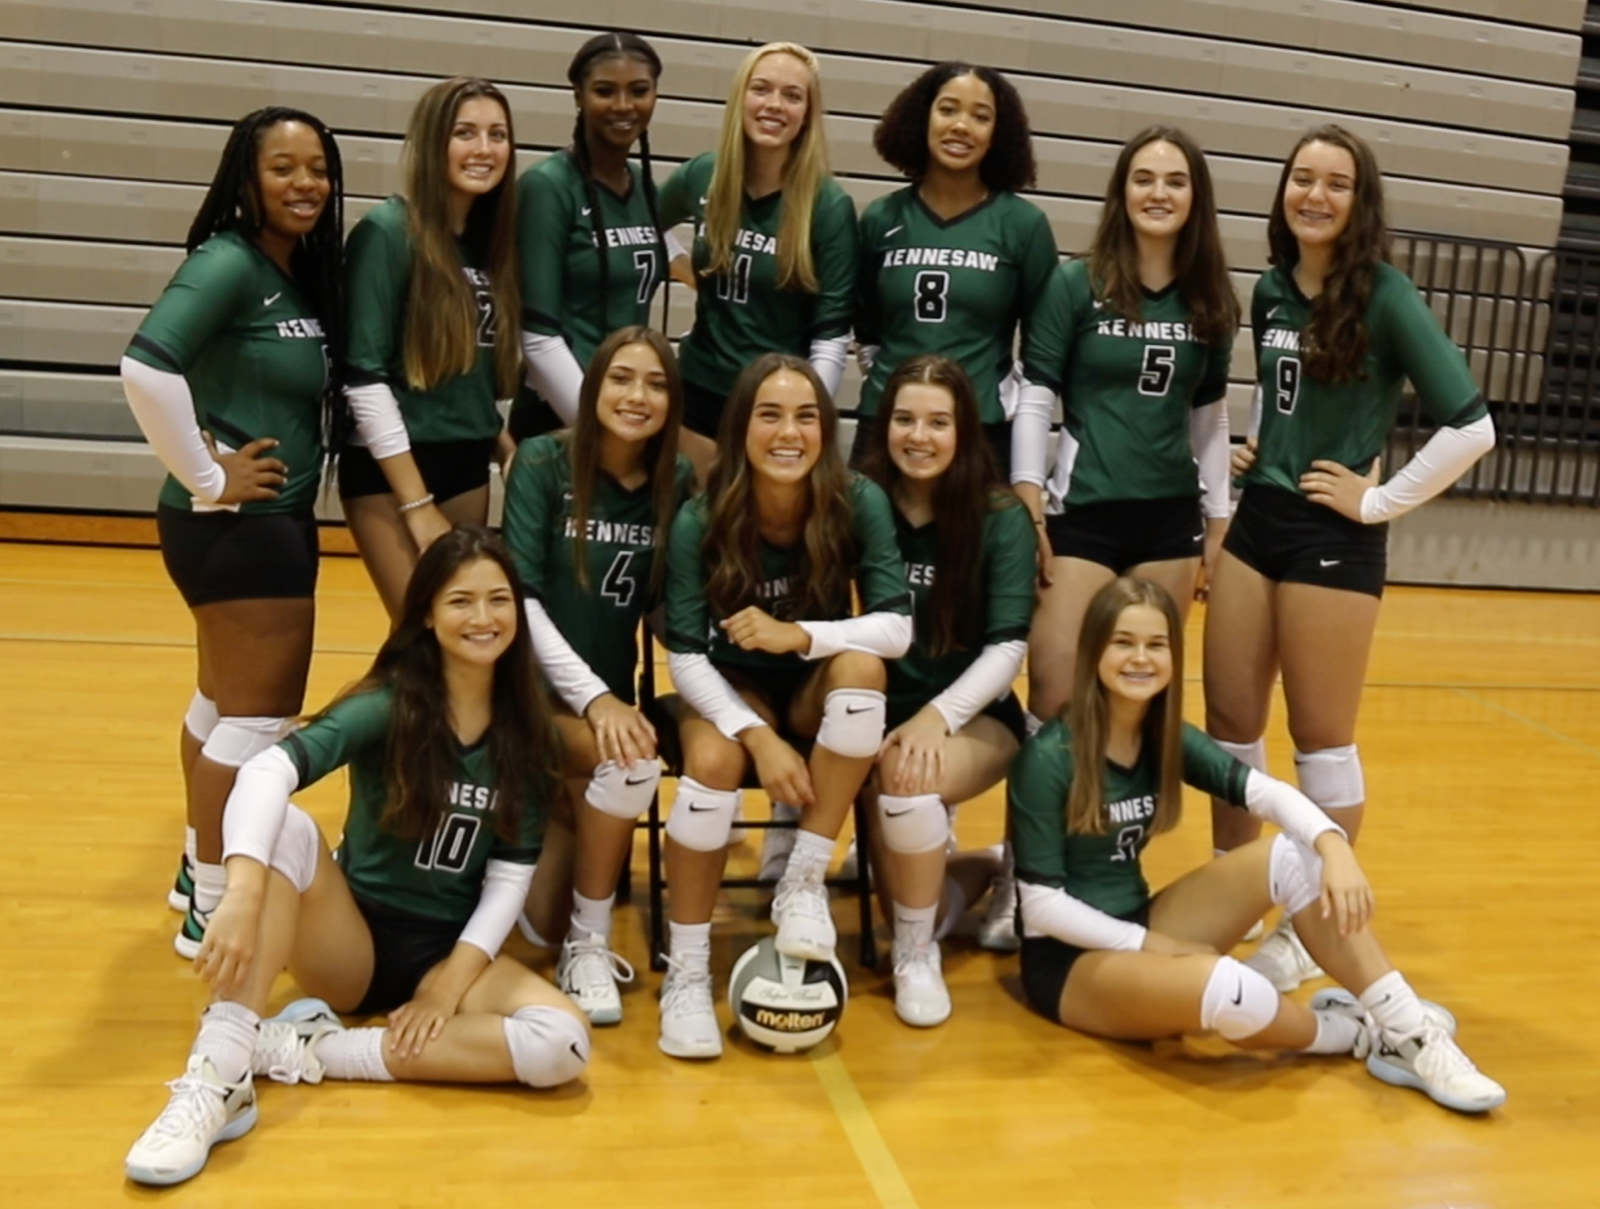 Lady Mustangs Volleyball defeat Riverwood Raiders Advance to Sweet 16!